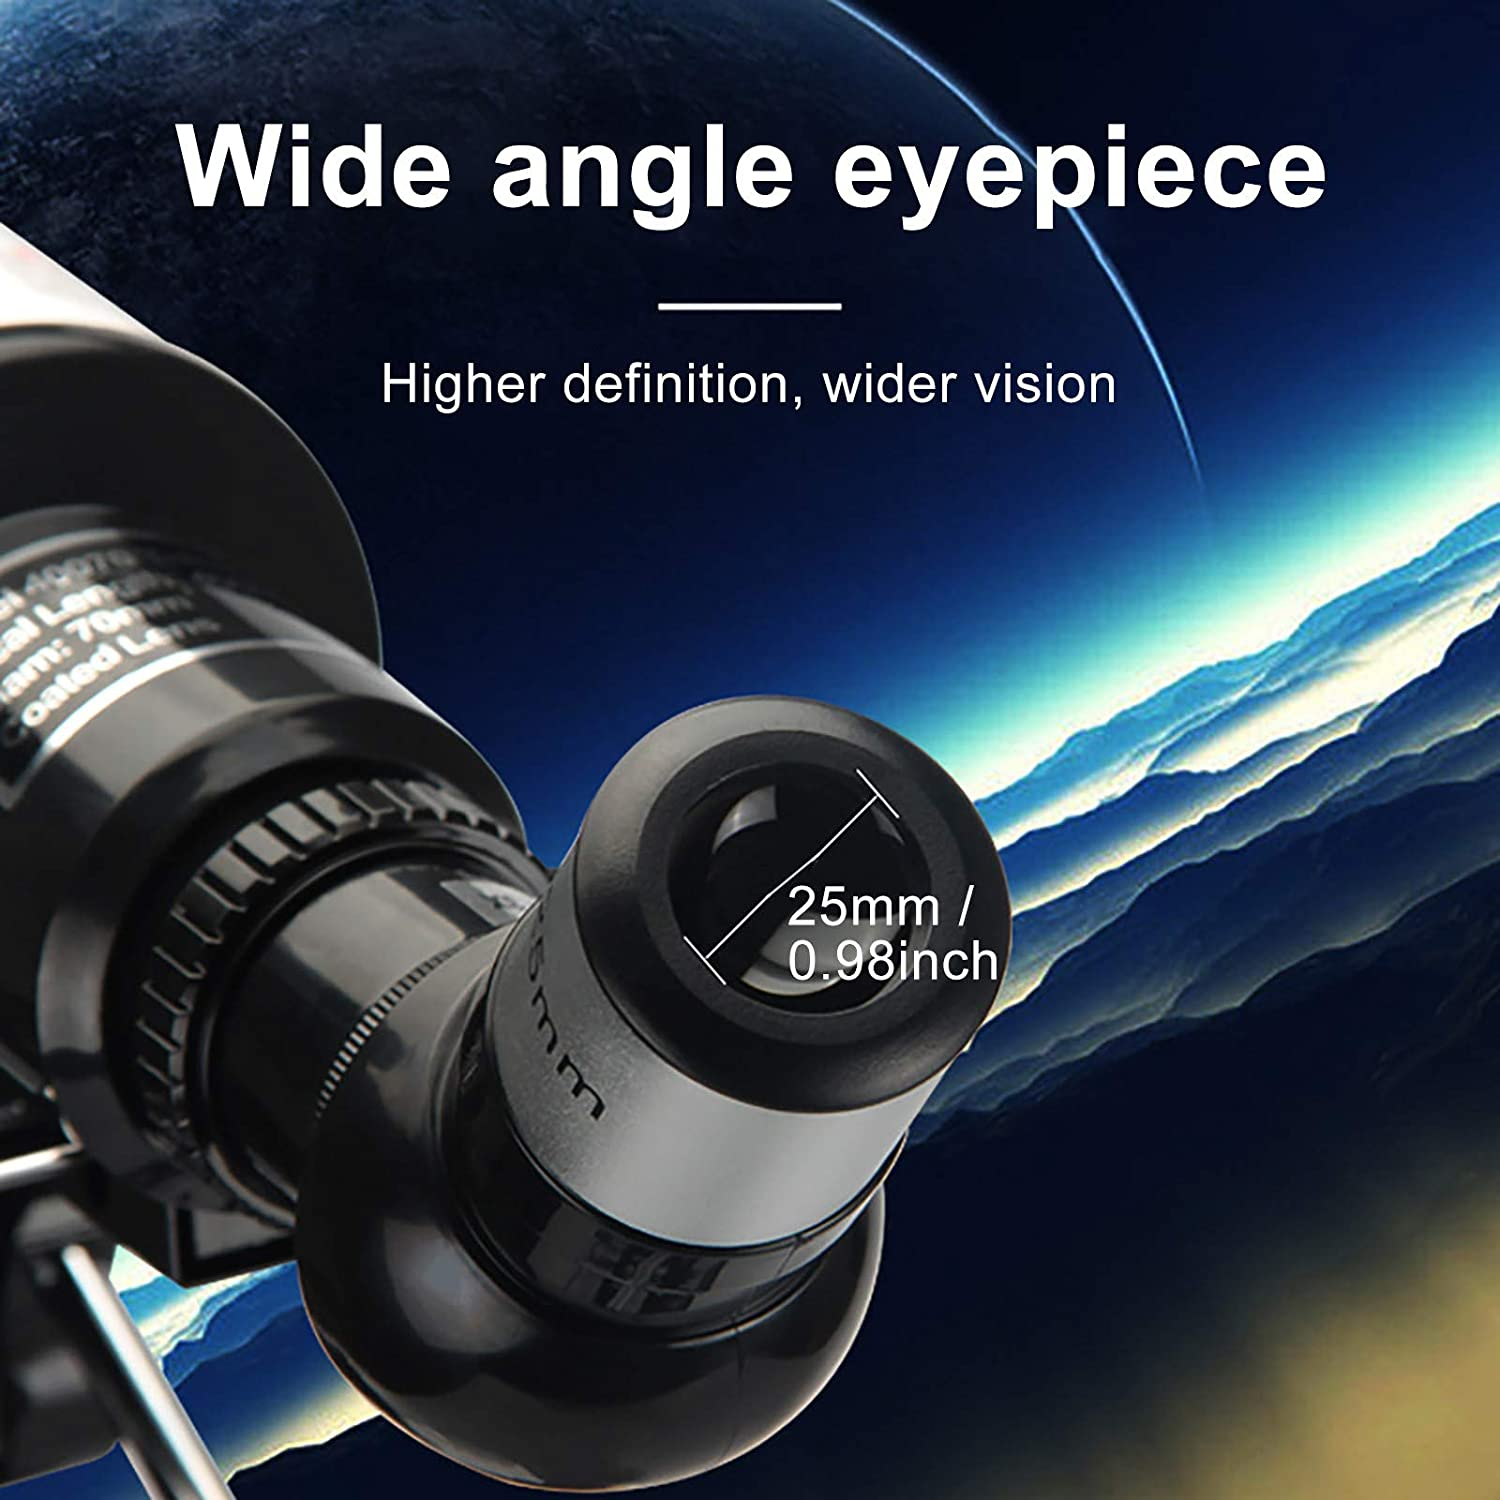 f//5.7 Focal Length 70mm Aperture Astronomical Telescope with Adjustable Tripod,Portable HD Monoculars for Adults Beginners and Children,High Magnification High Definition Night Vision,400mm